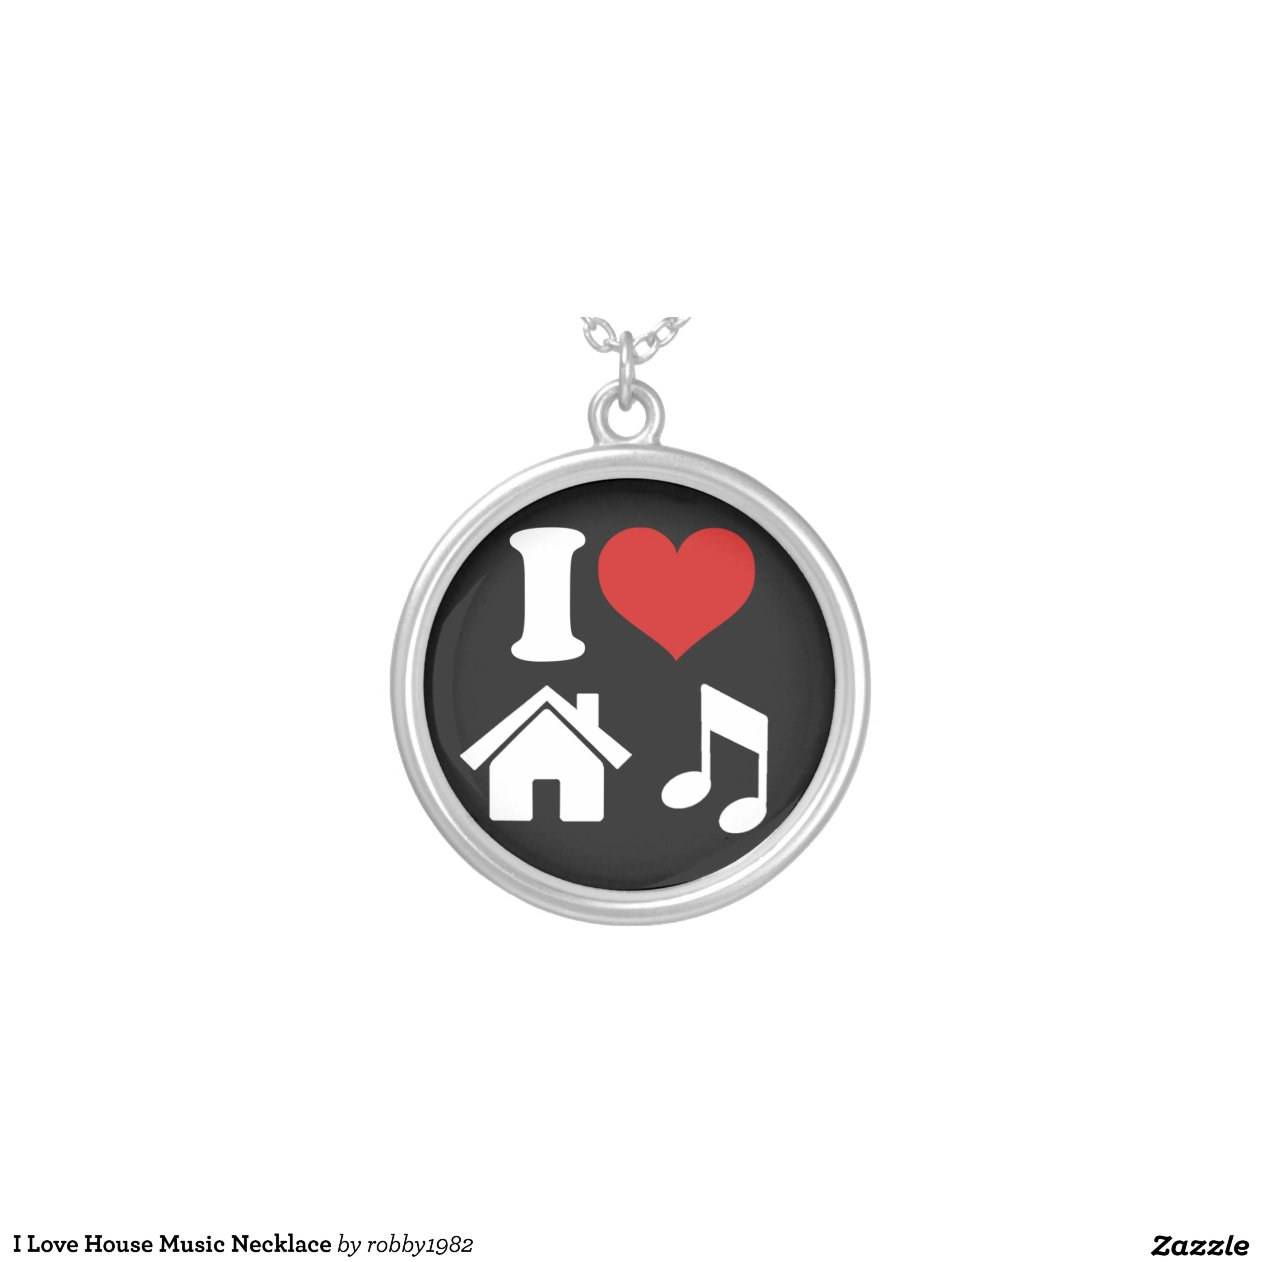 I love house music necklace necklace zazzle for 93 house music